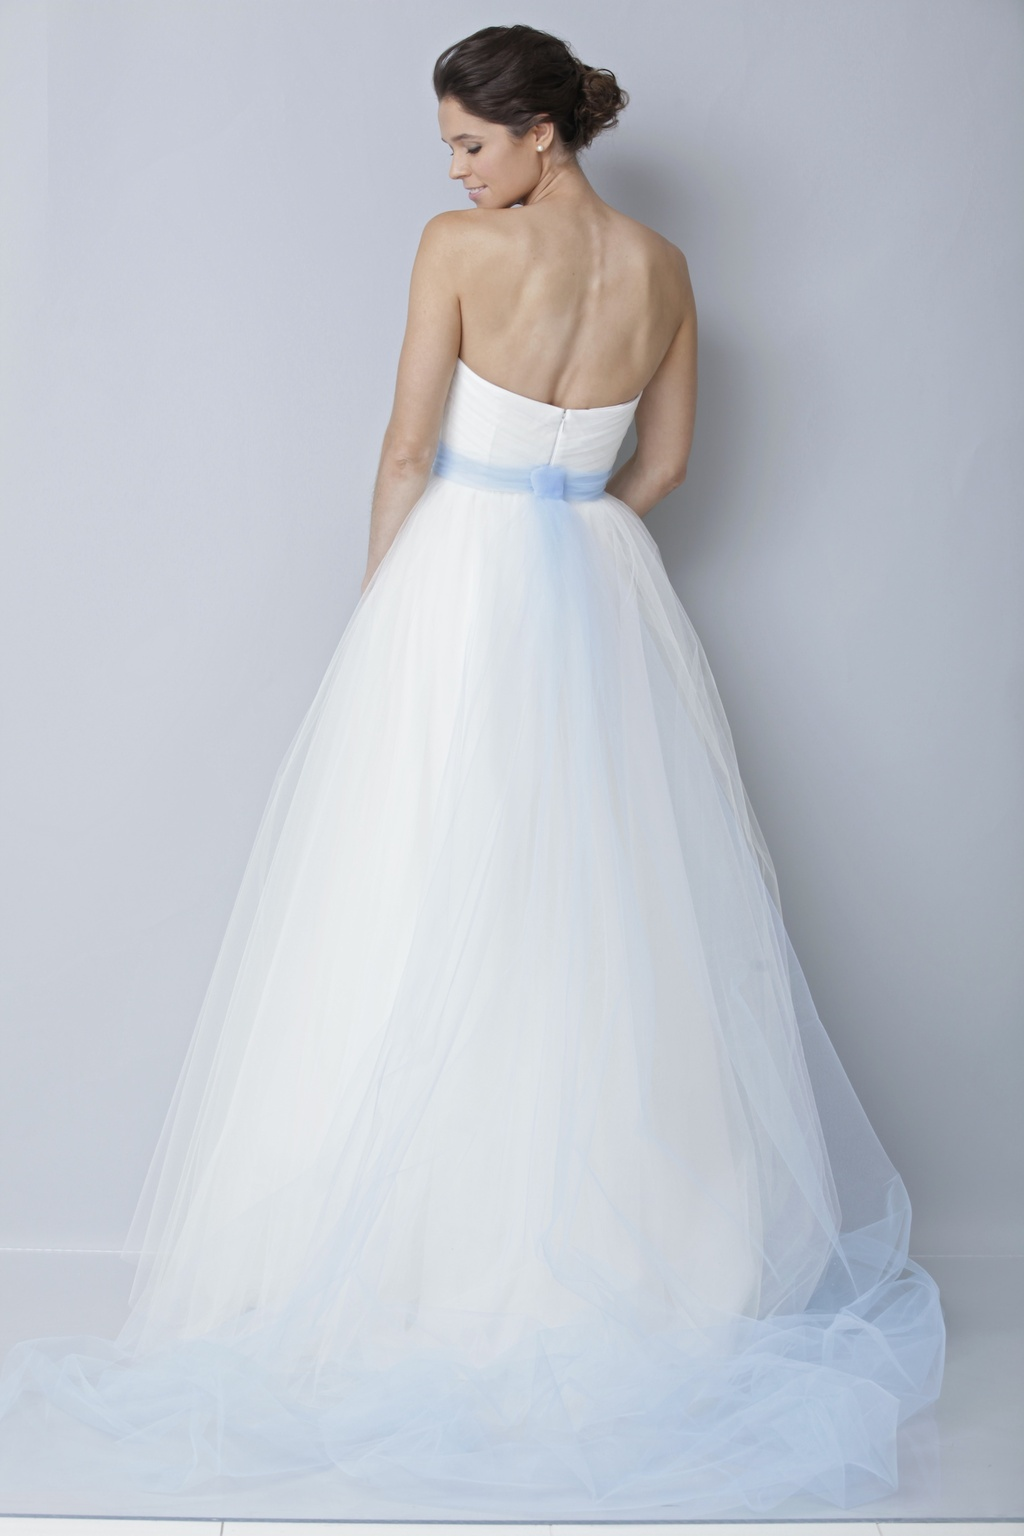 2013-wedding-dress-by-theia-bridal-gowns-tulle-sky-blue-sash-b.full